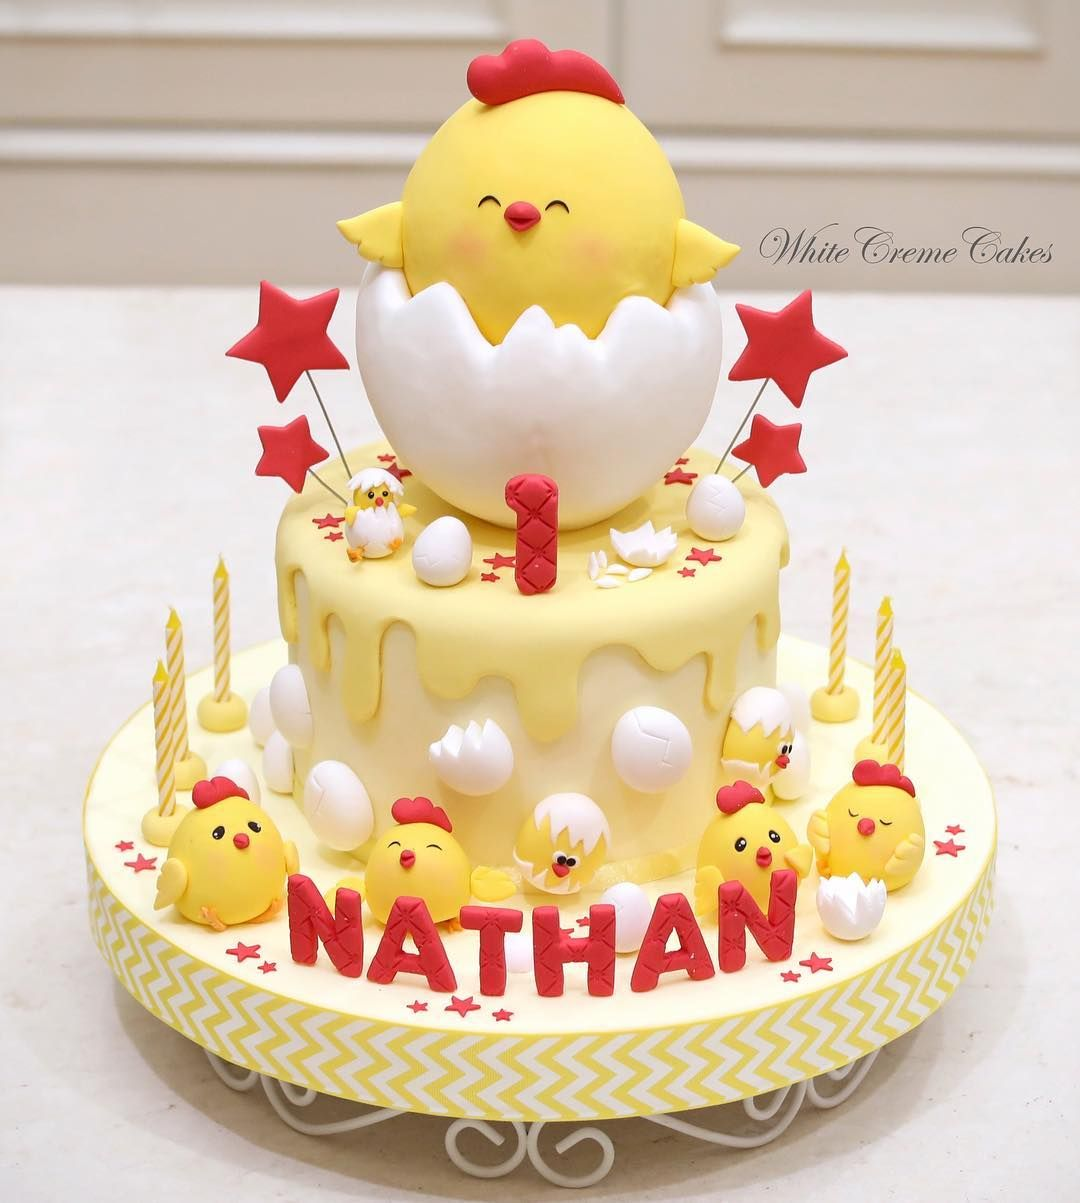 Astonishing Image May Contain Food With Images Chicken Cake Baby Birthday Cards Printable Inklcafe Filternl